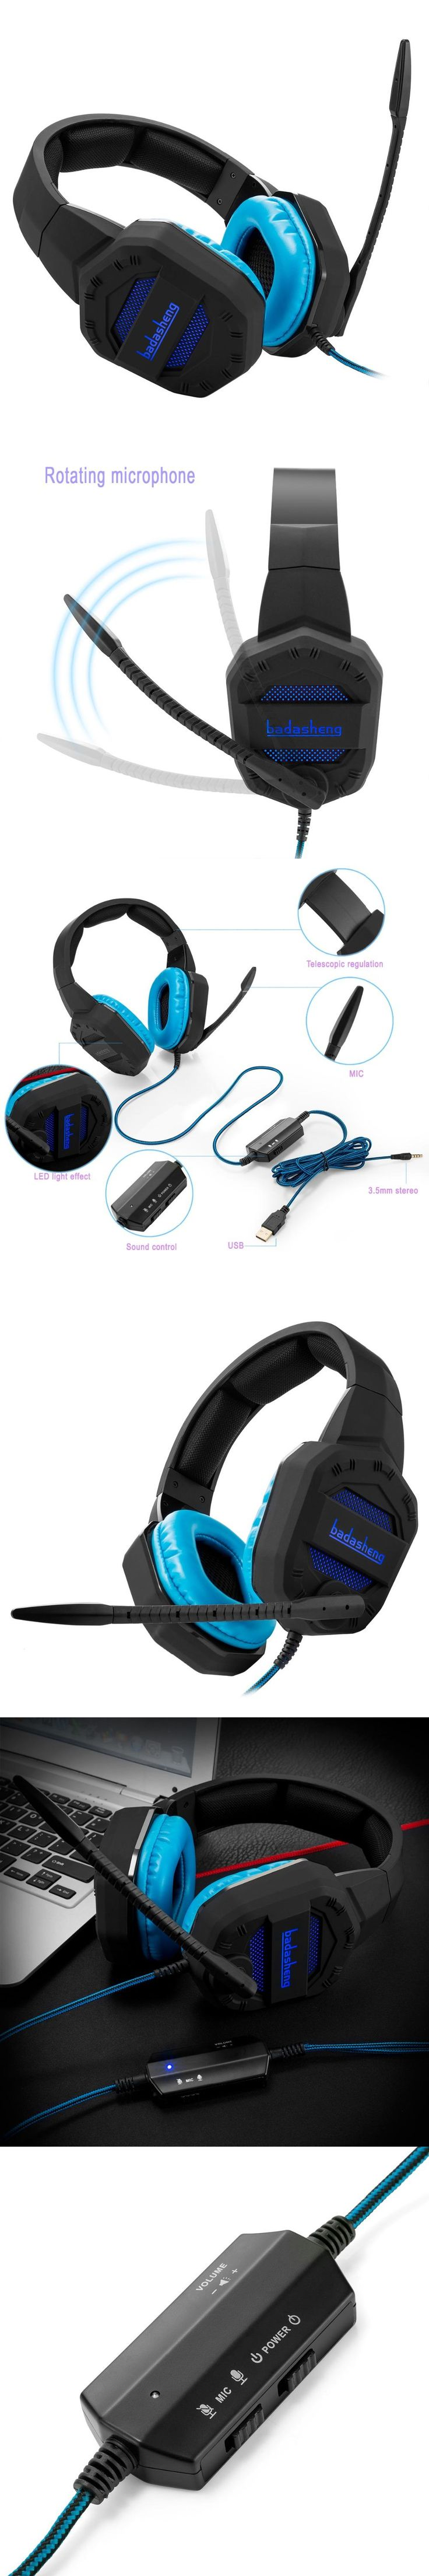 LED Light PS4 headphone headsets for PS4 Xbox one USB with 3.5mm plug headsets for gaming console